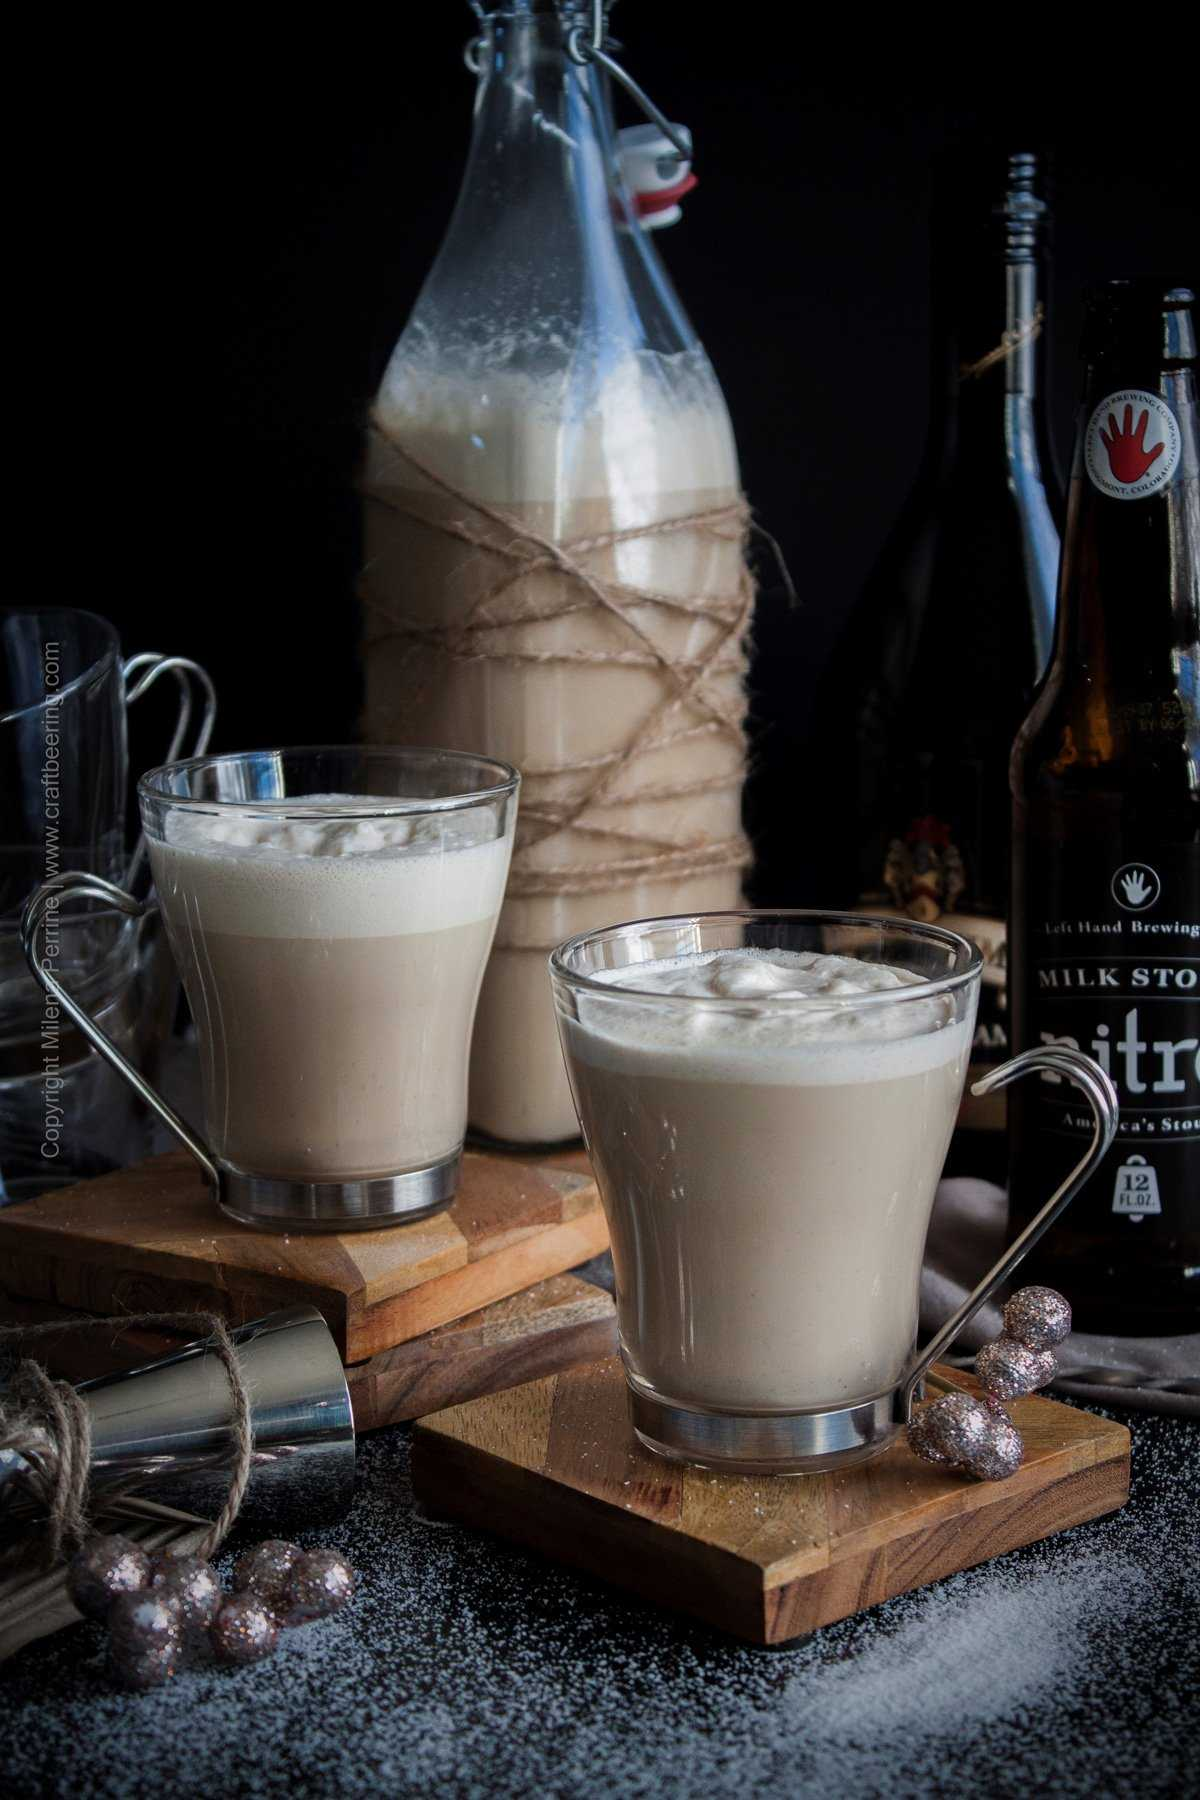 Beer nog with stout and Irish cream. The best! #beernog #beereggnog #eggnog #stouteggnog #irishcreamnog